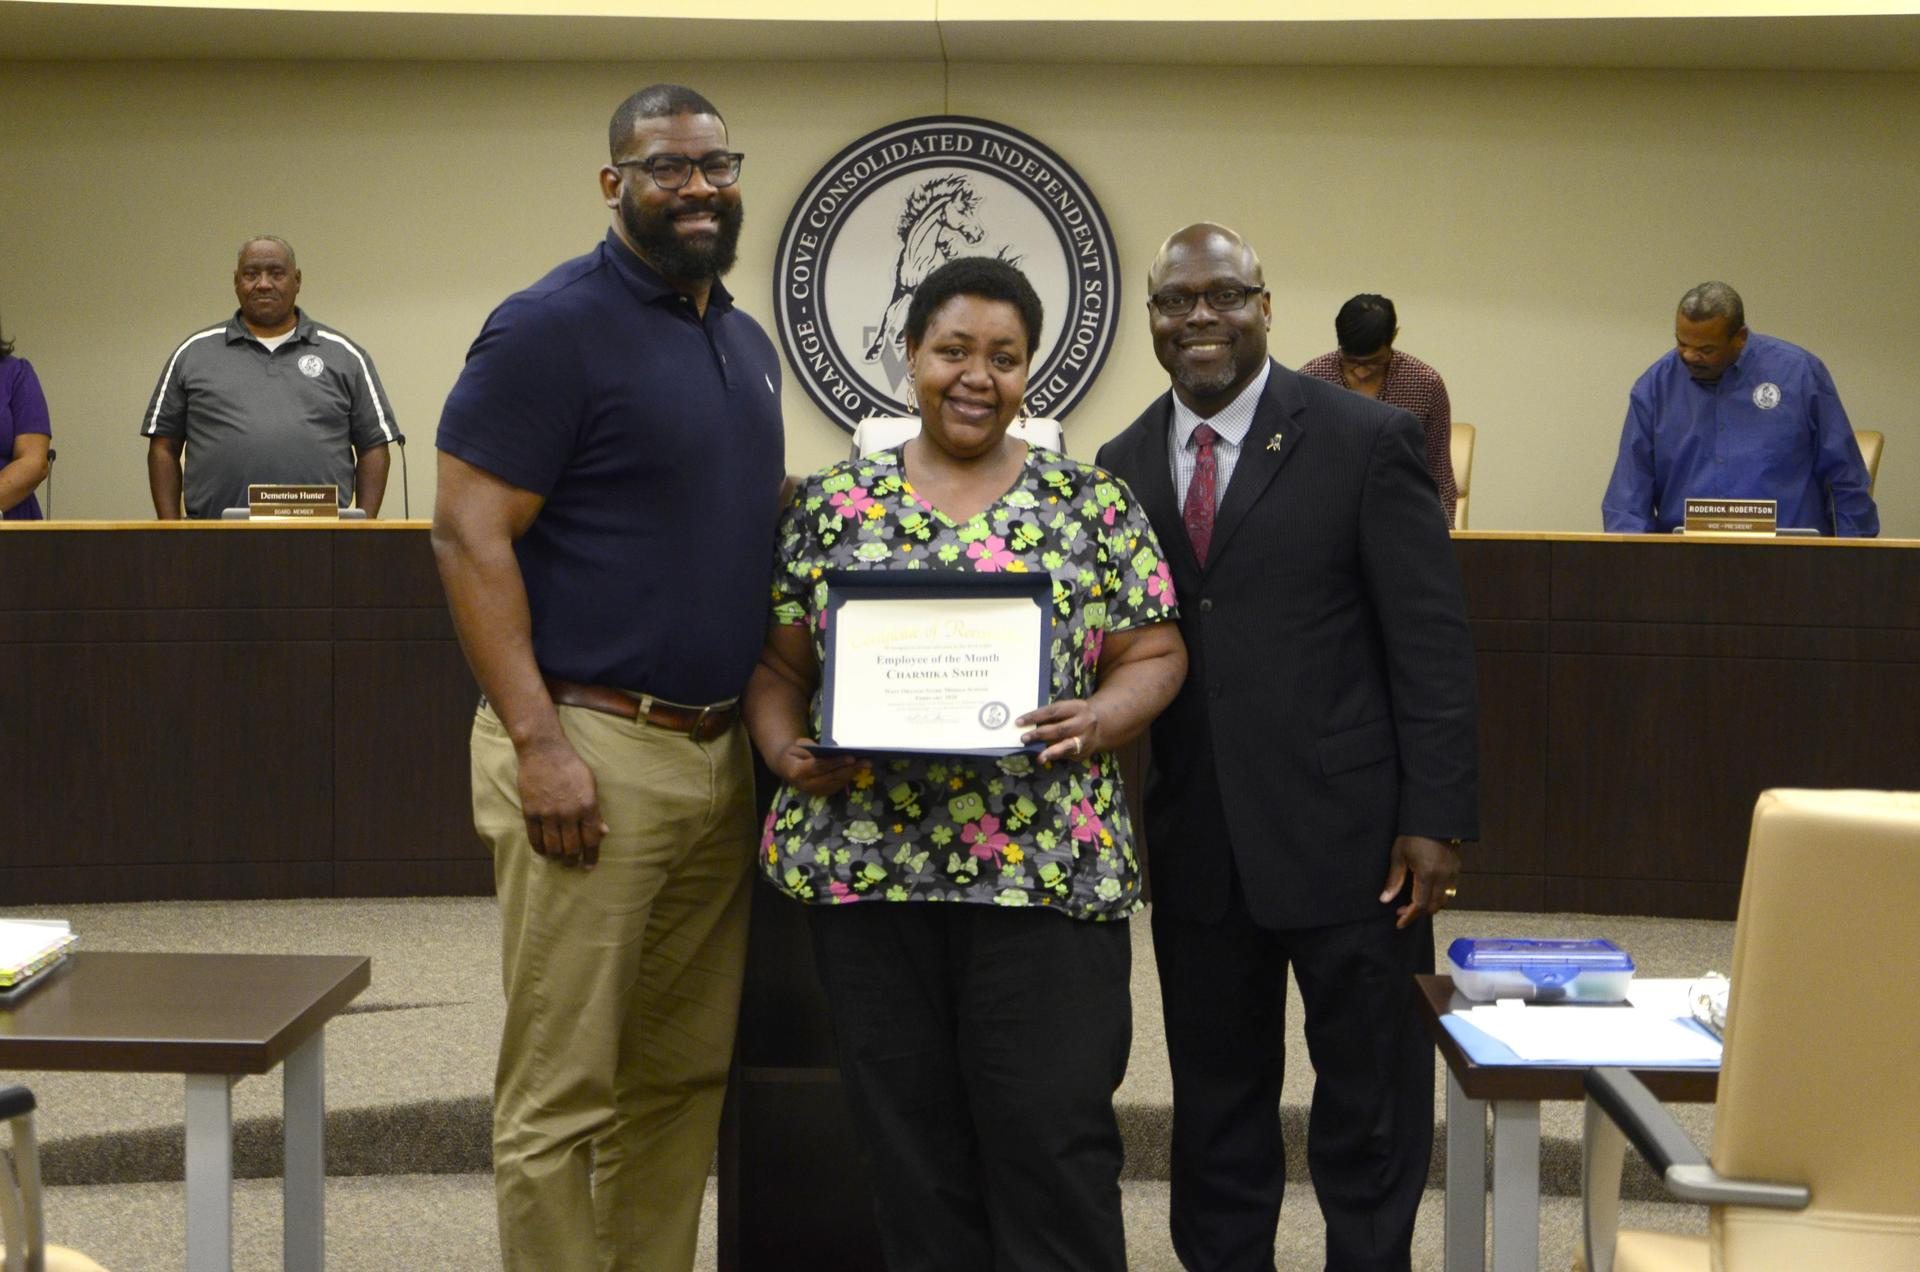 employee of February pictured with Dr. Harris and Mr. McGrew